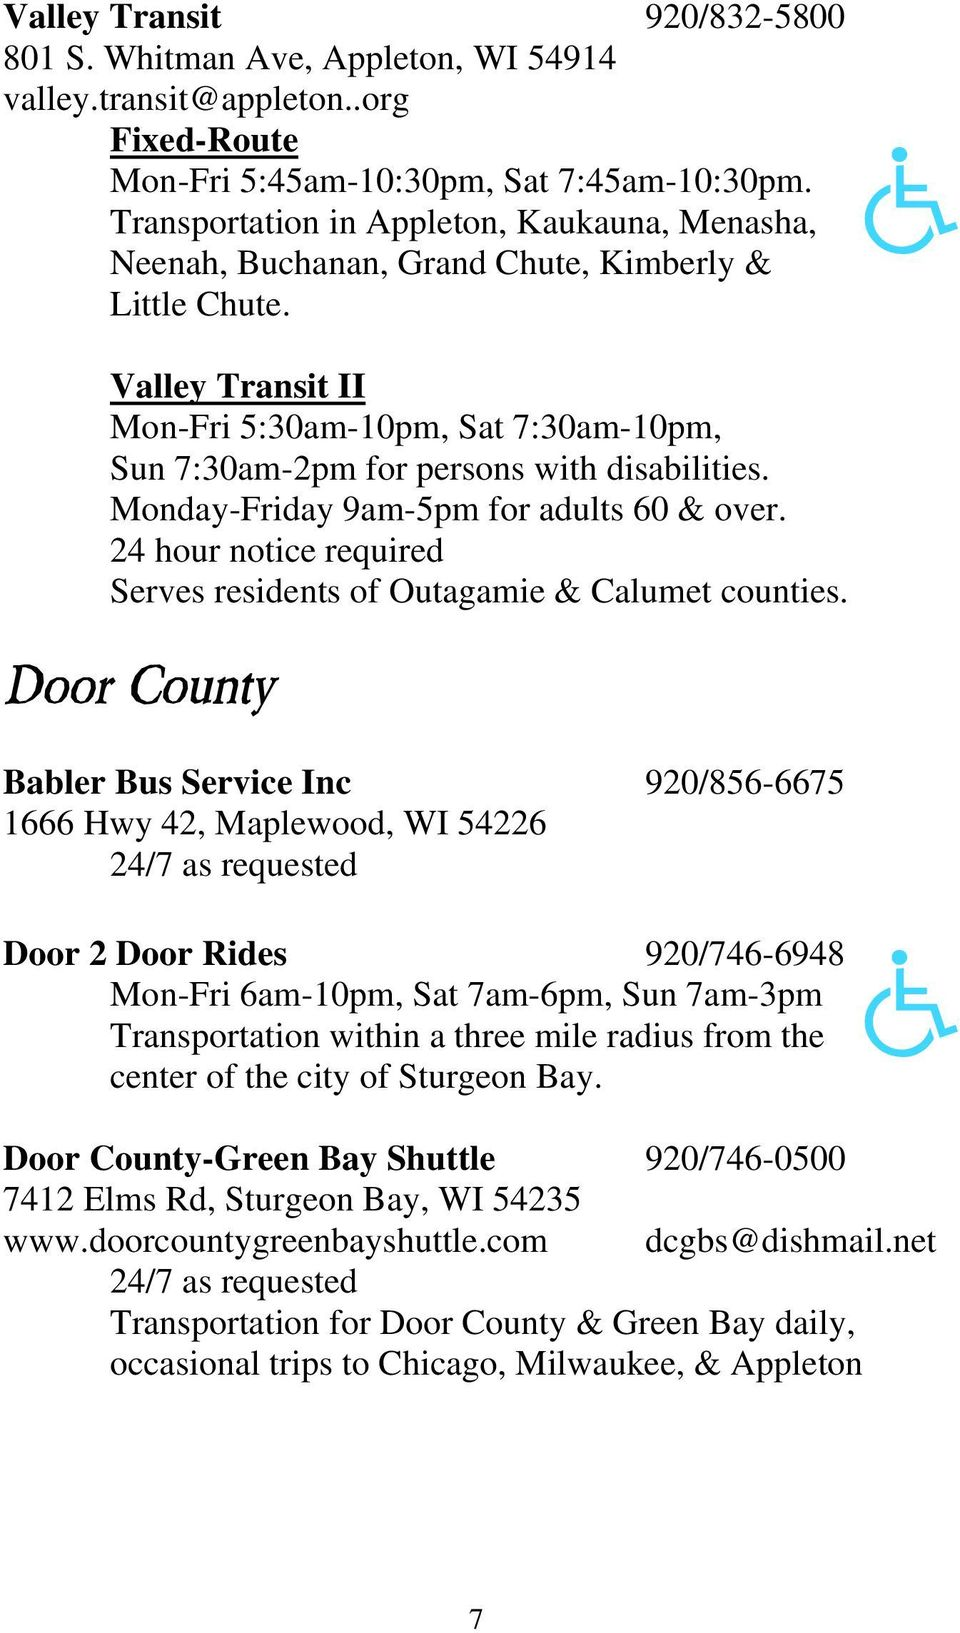 Valley Transit II Mon-Fri 5:30am-10pm, Sat 7:30am-10pm, Sun 7:30am-2pm for persons with disabilities. Monday-Friday 9am-5pm for adults 60 & over.